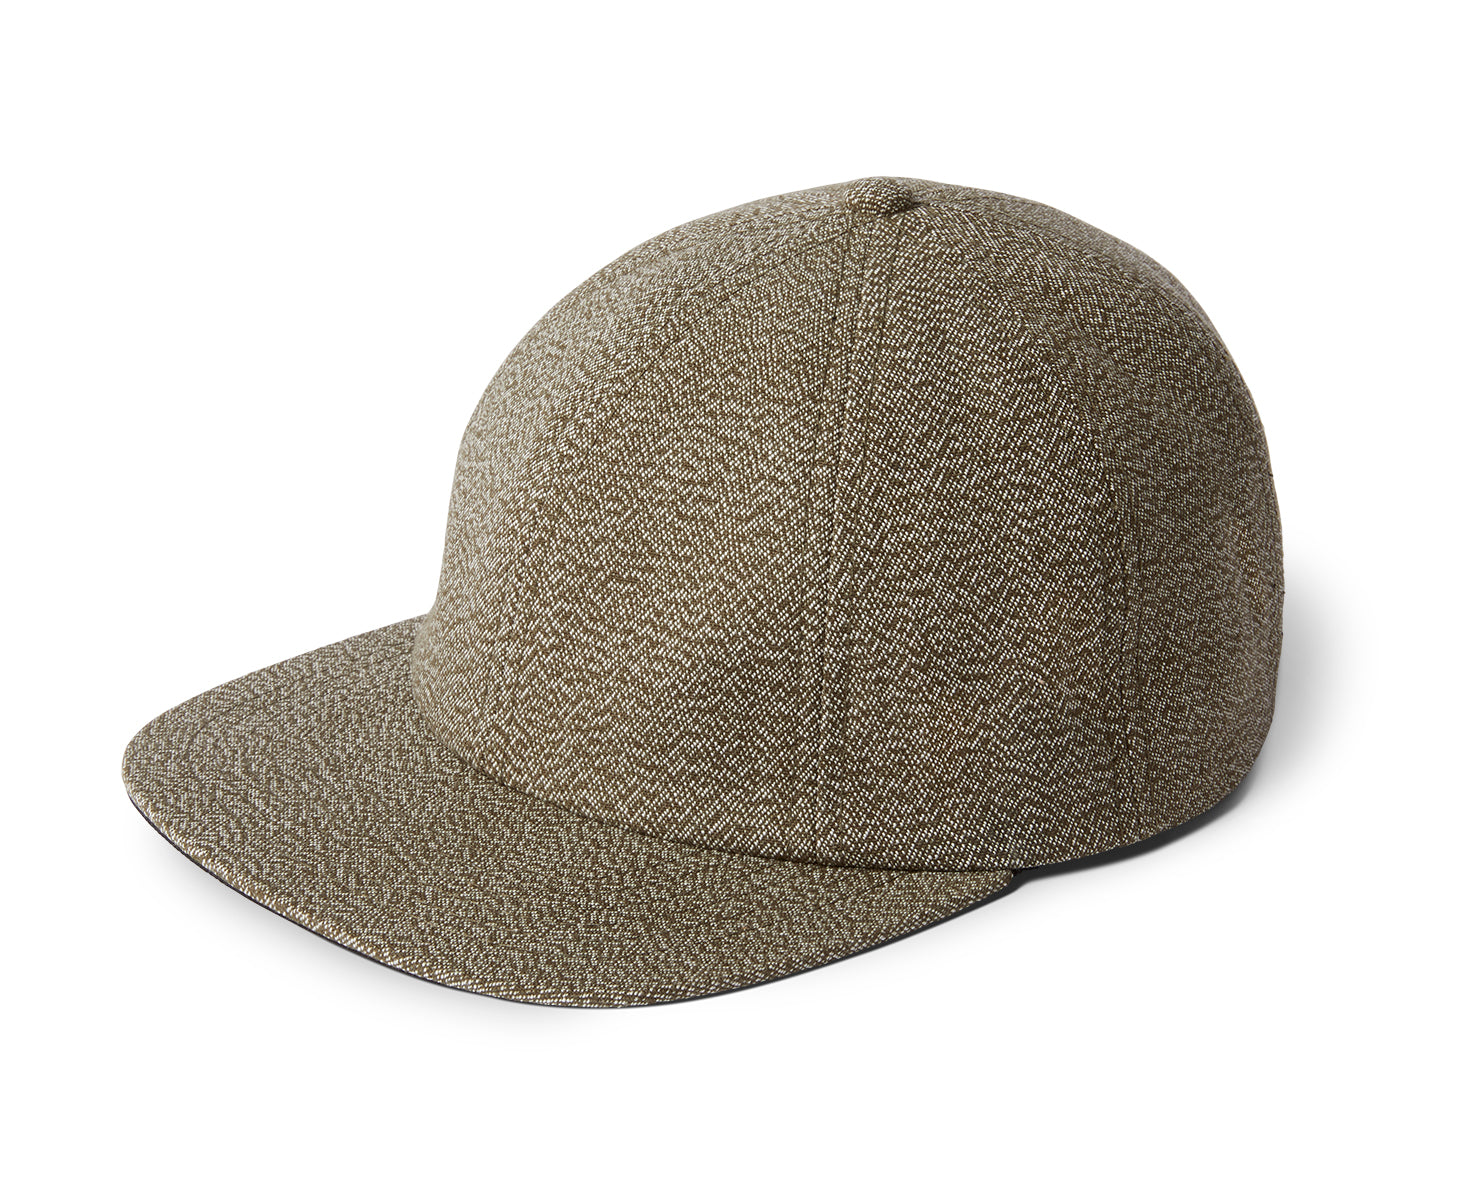 8 PANEL HAT | KILLSPENCER® - Swiss Army Green Canvas